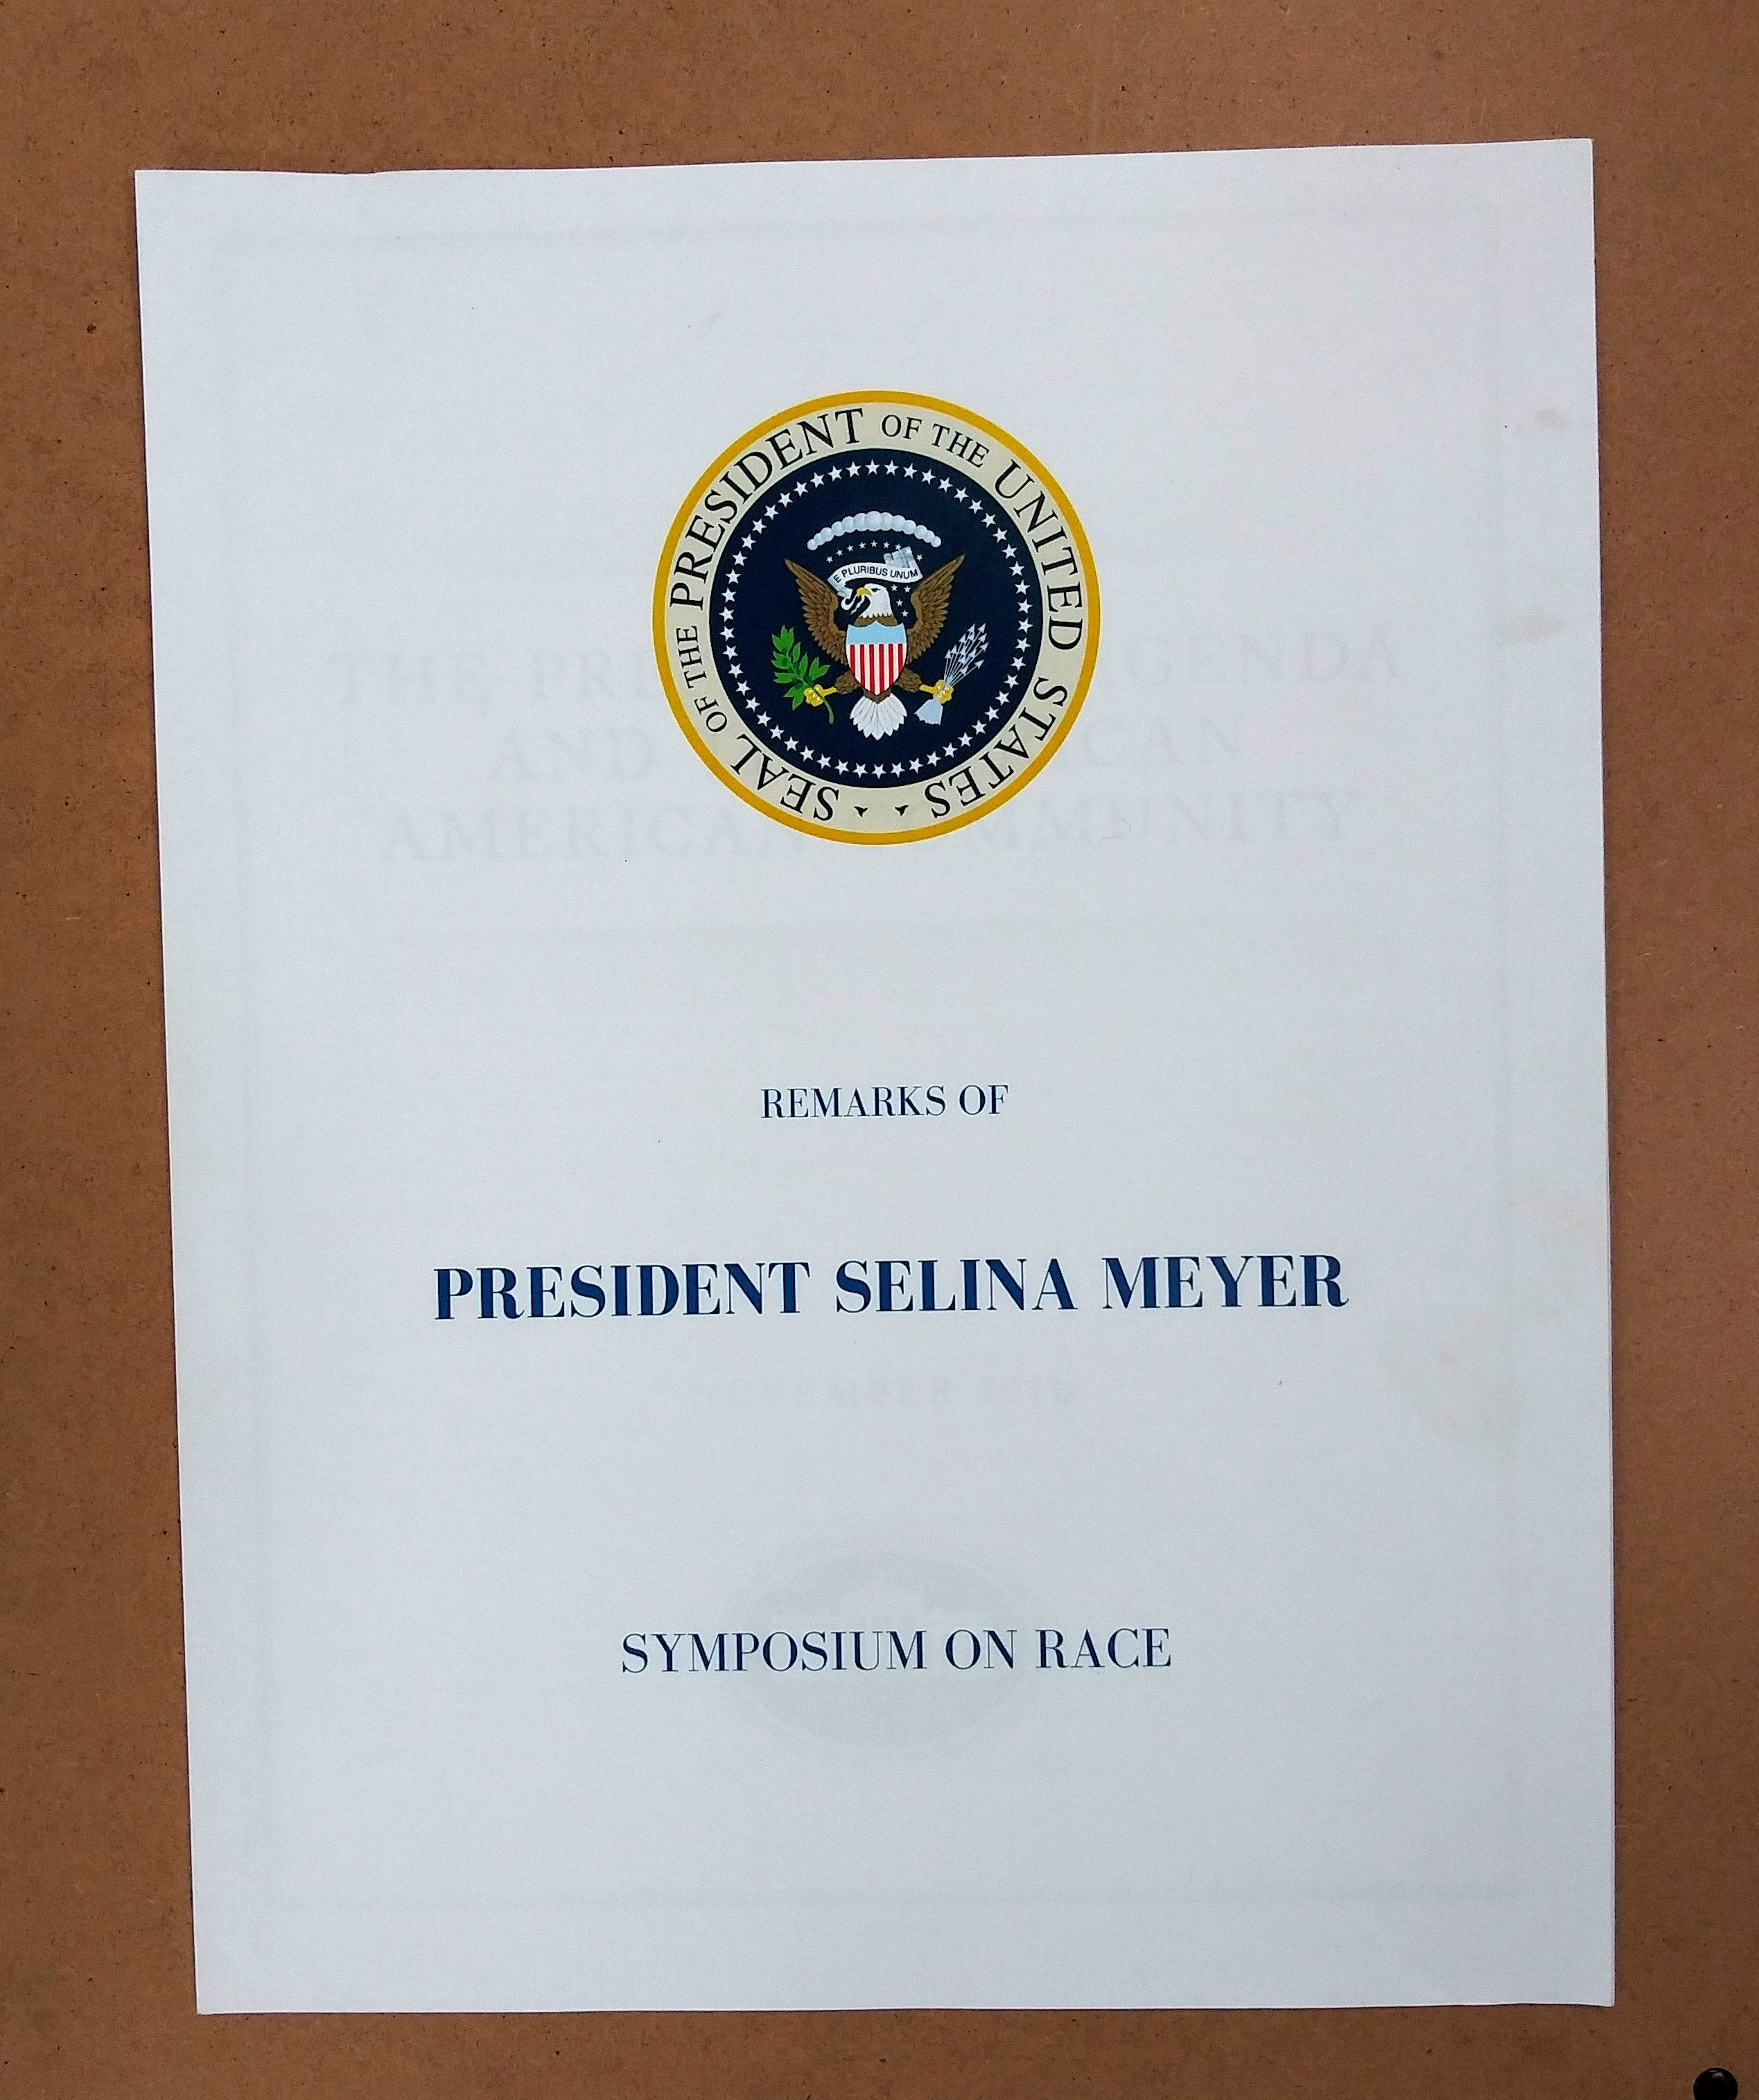 VEEP: President Selina Meyer's Symposium On Race